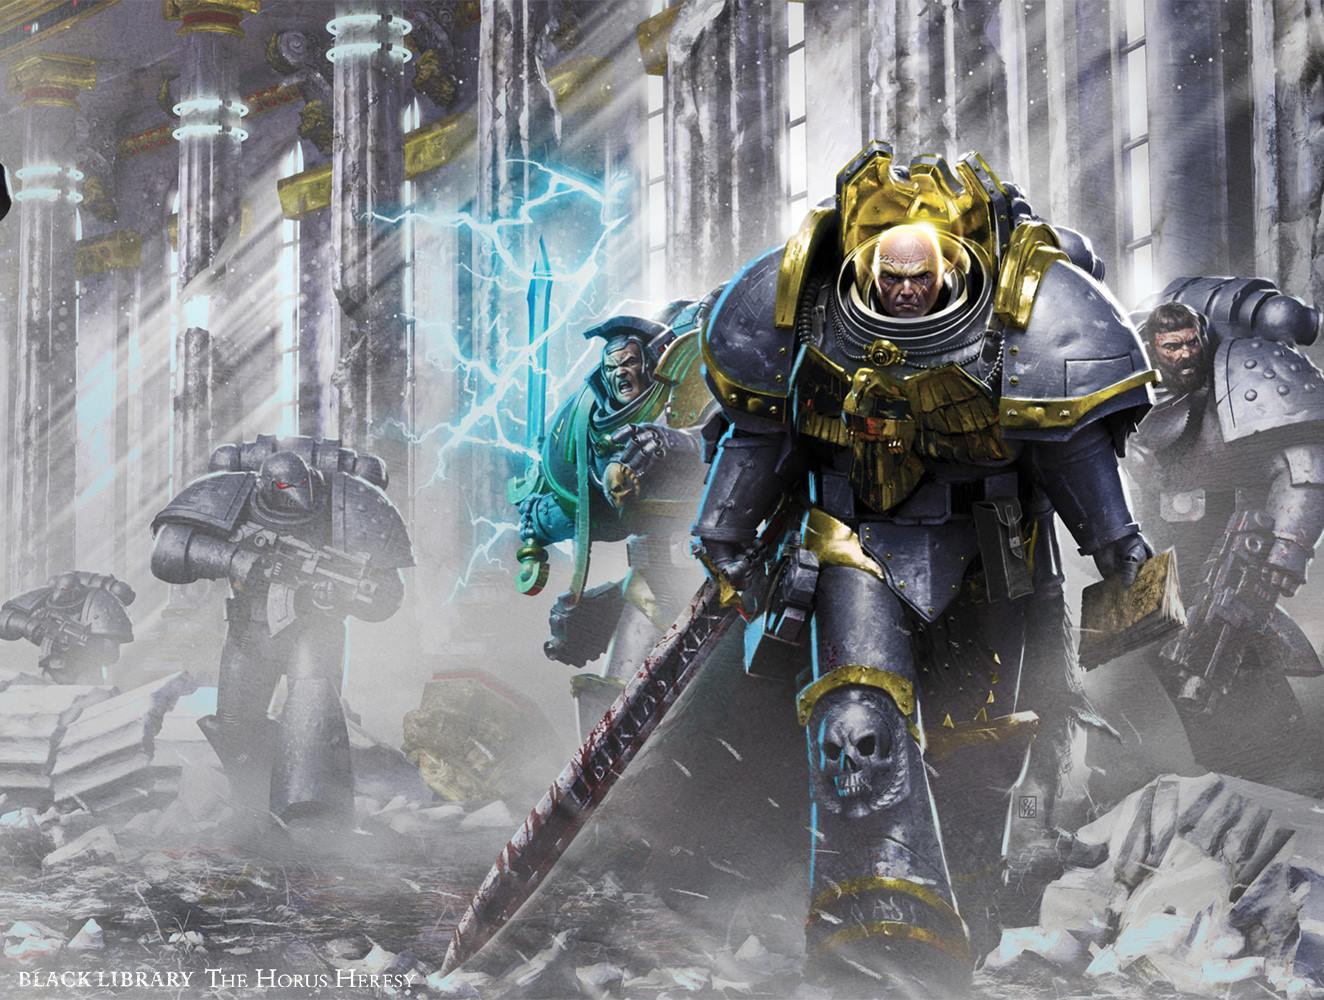 [Horus Heresy] Garro de James Swallow 14991010